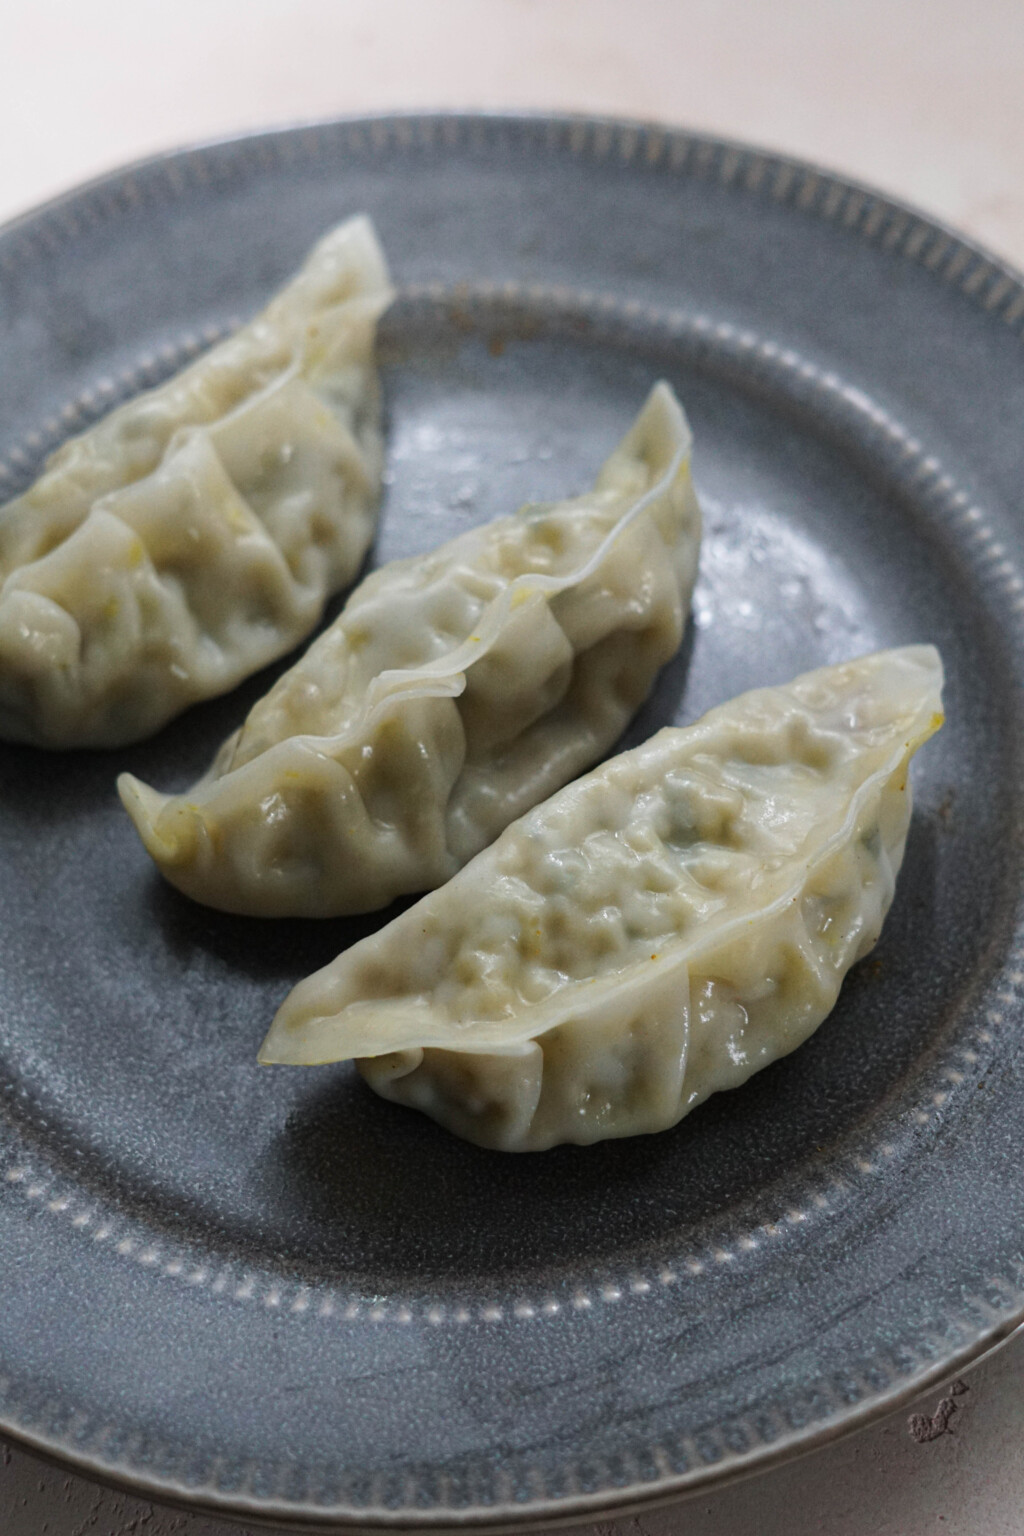 Steamed vegetable momos on a gray plate.